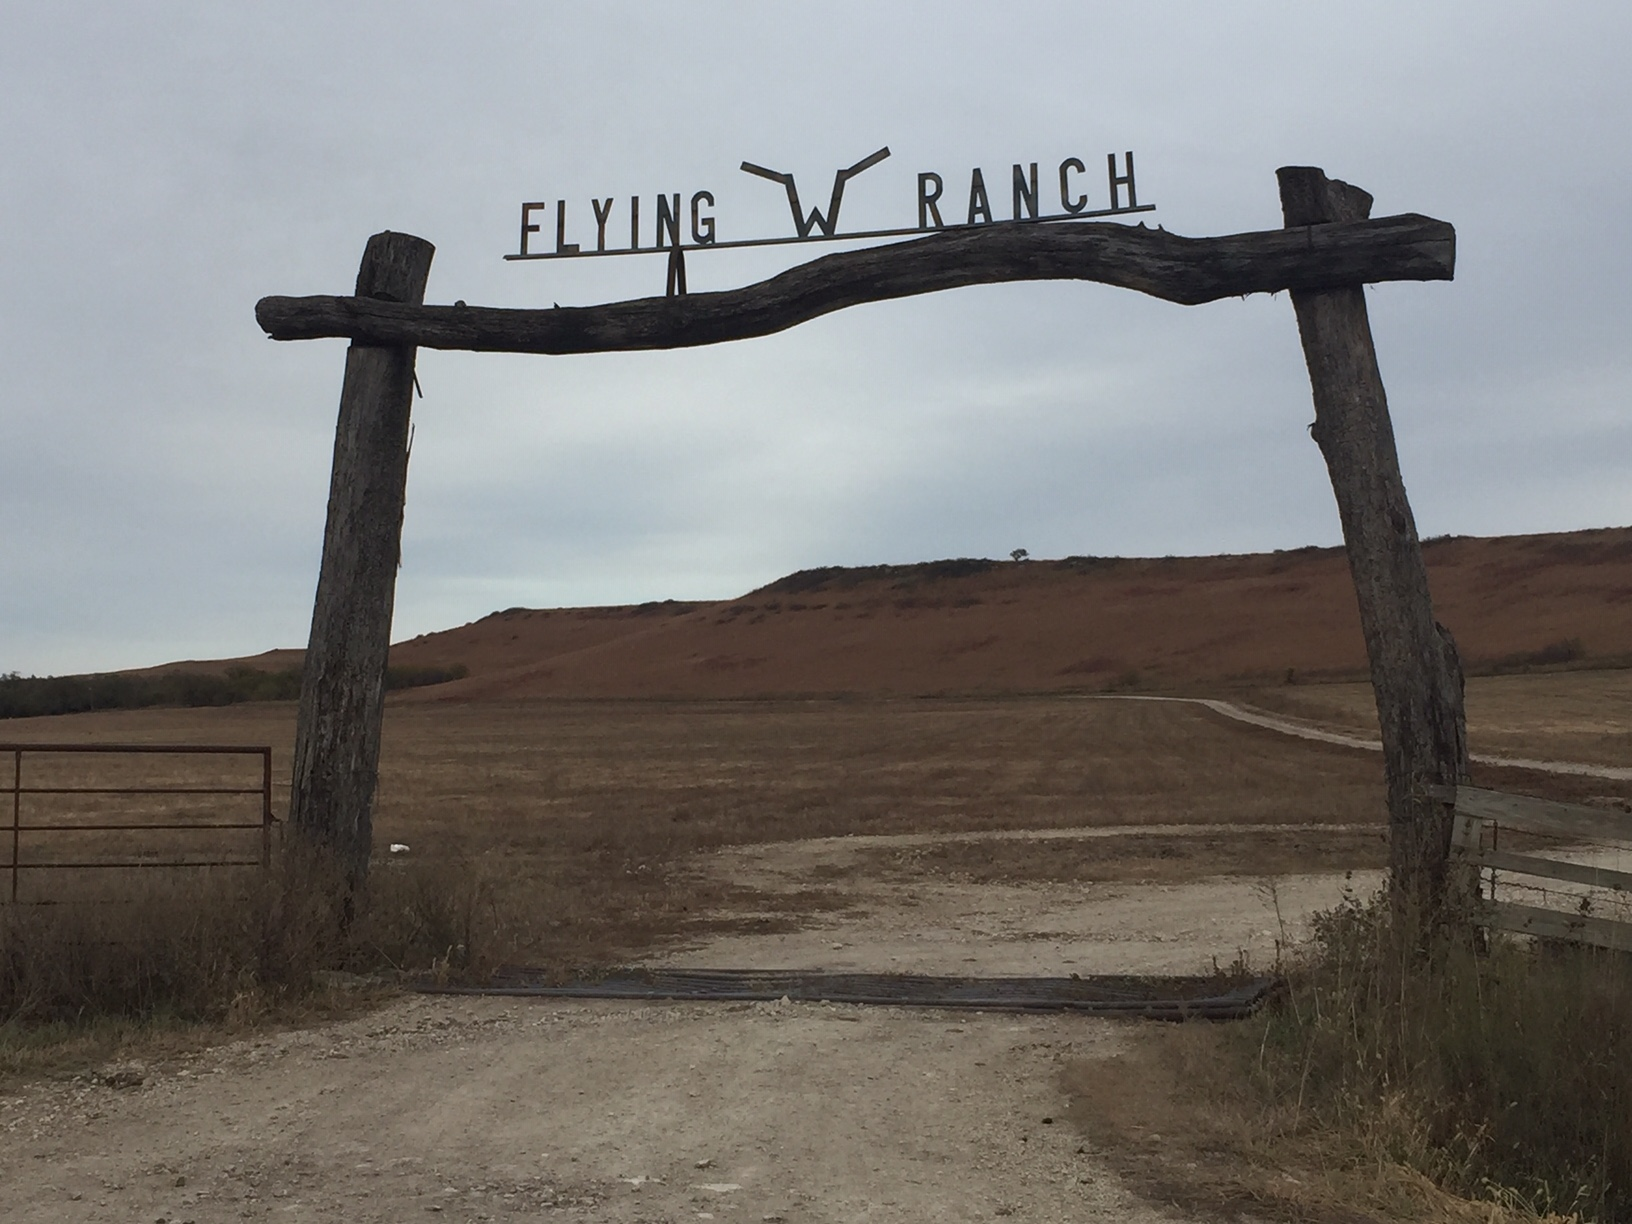 One gateway to the Flying W Ranch, where birdwatcher Bones Ownbey works as head ranch hand. (Photo by J. Schafer)